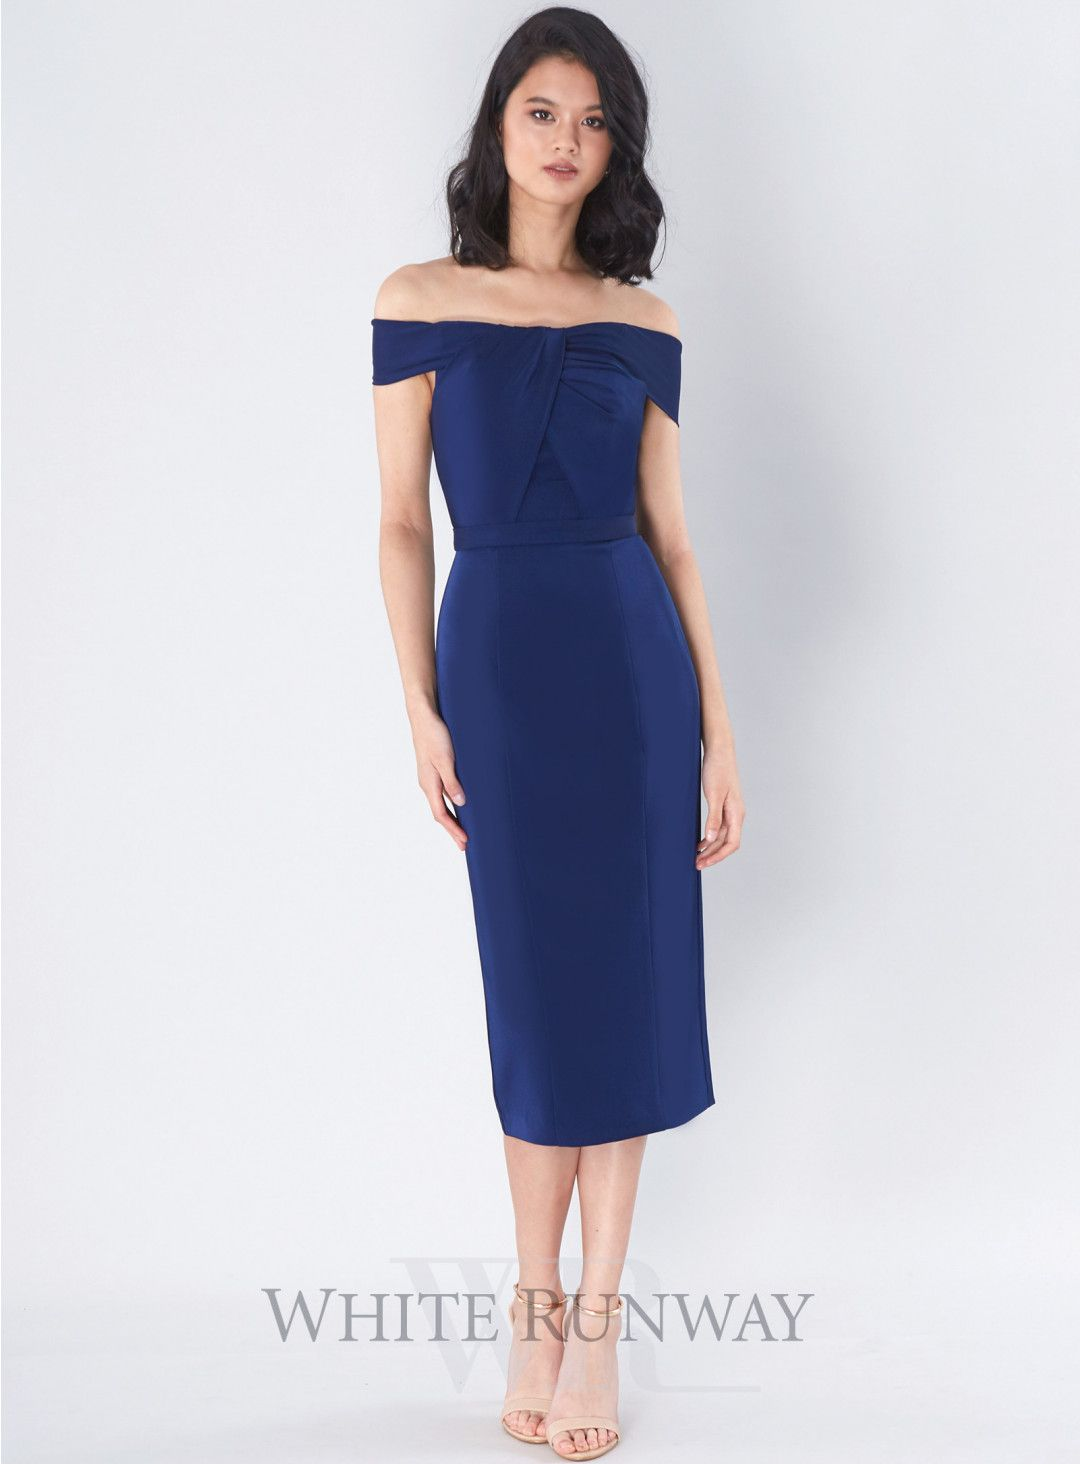 Avery cocktail dress a gorgeous midi length dress by jadore an off